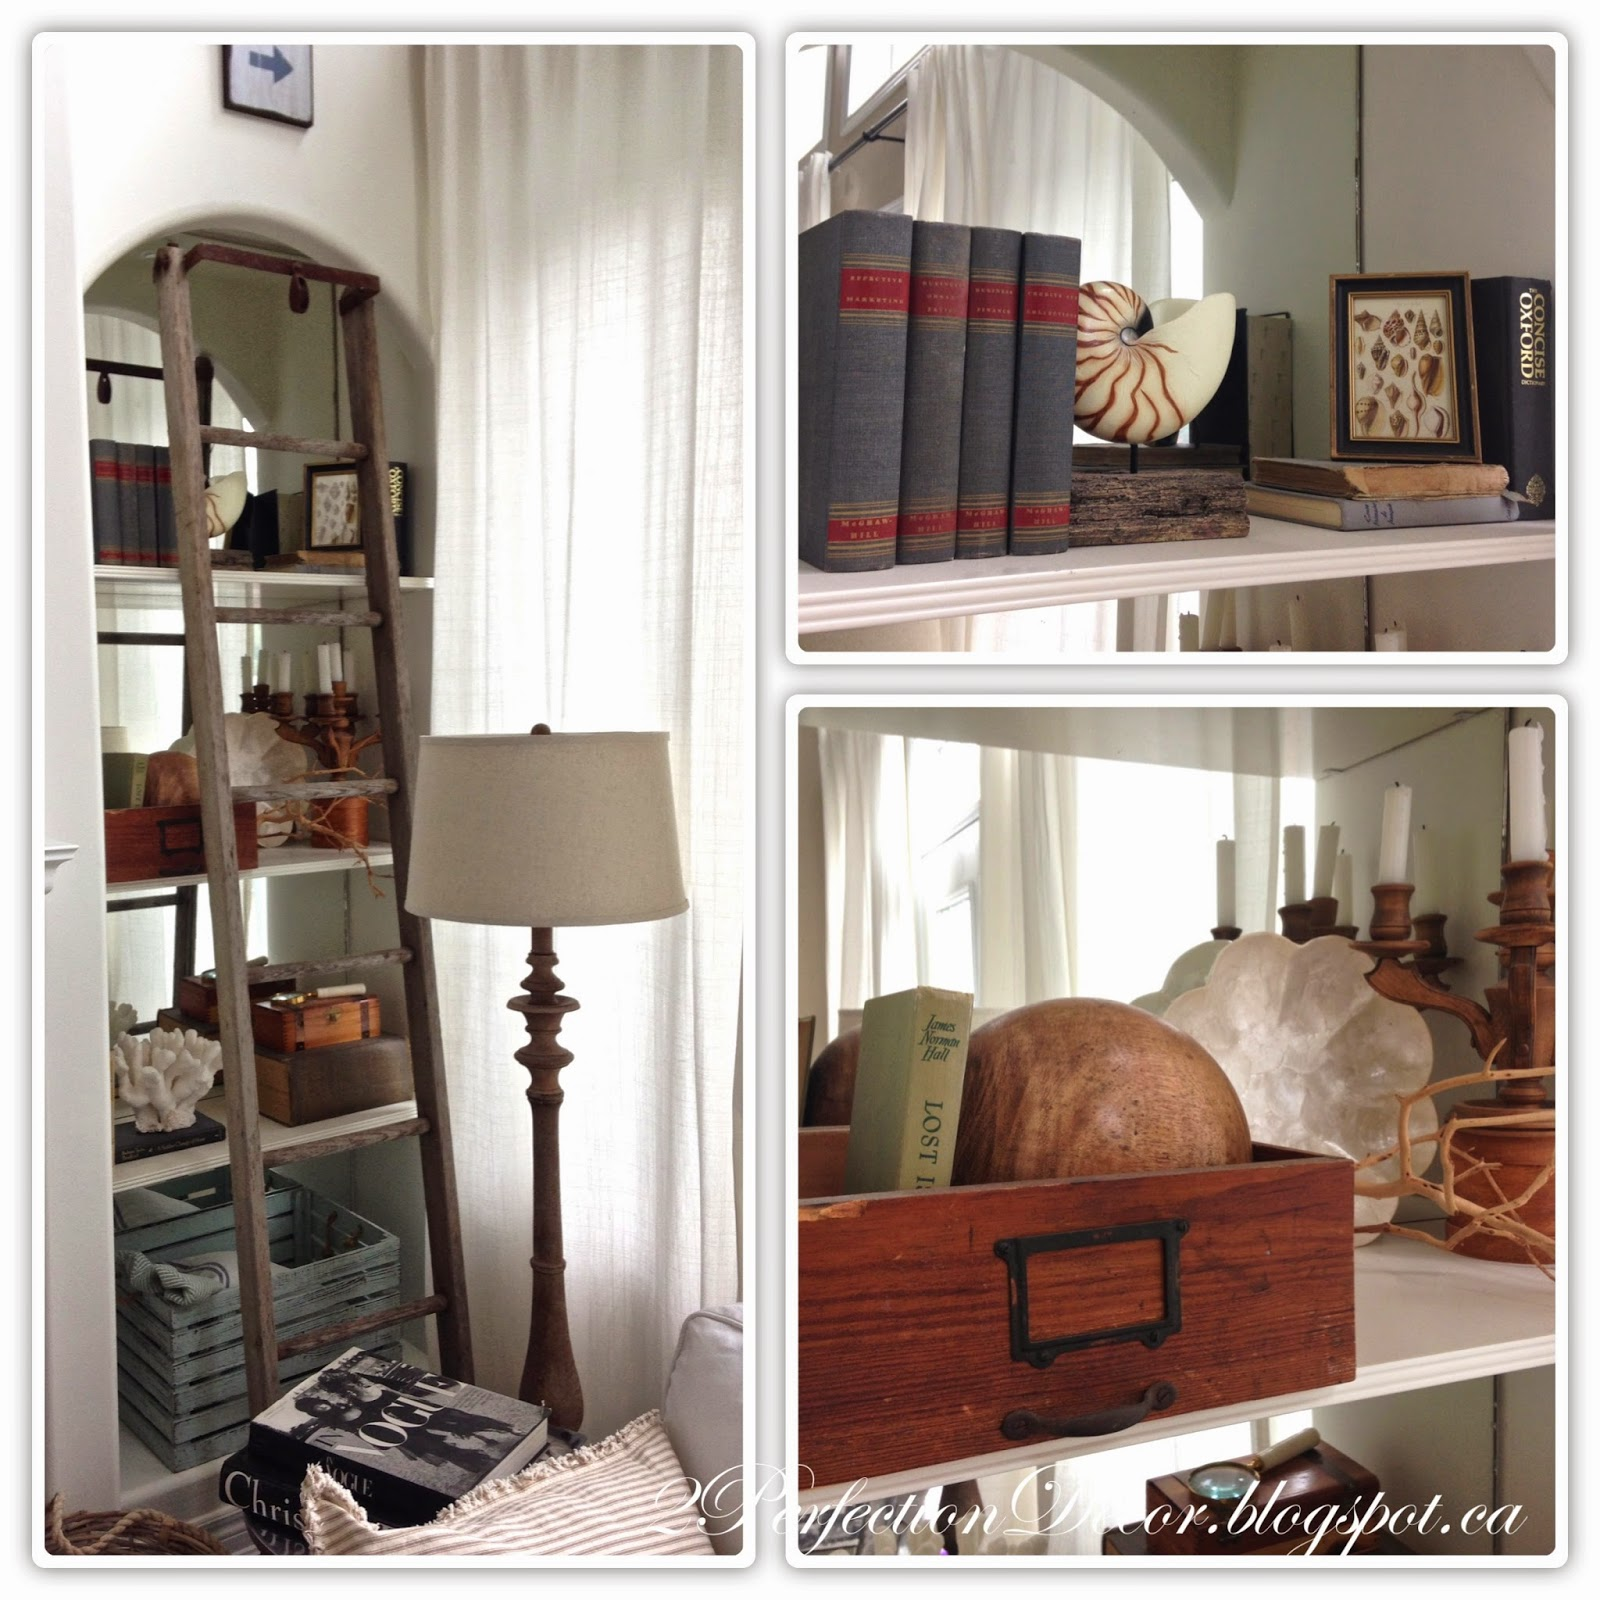 Built In Drywall Shelves 2perfection Decor Drywall Media Built Ins Styling